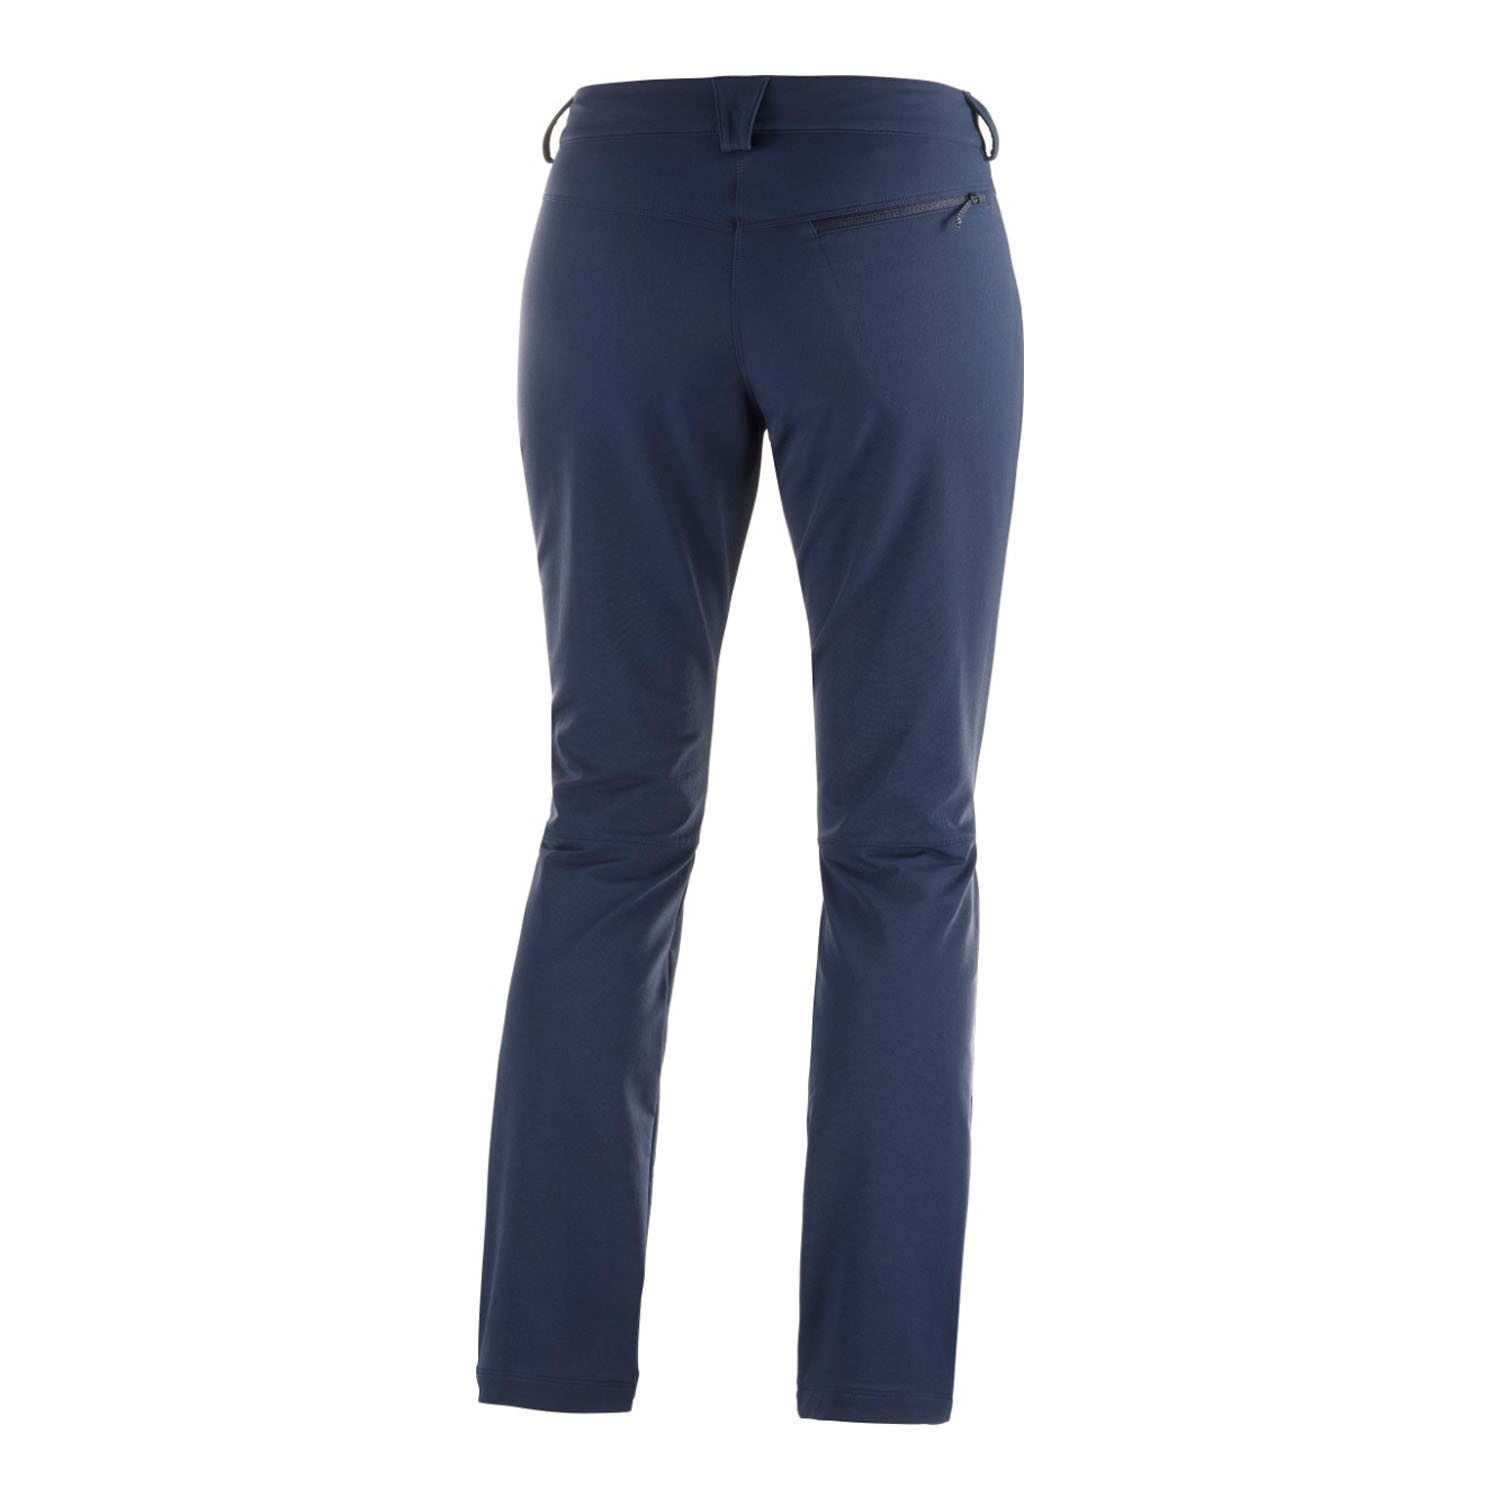 WAYFARER STRAIGHT WARM PANT